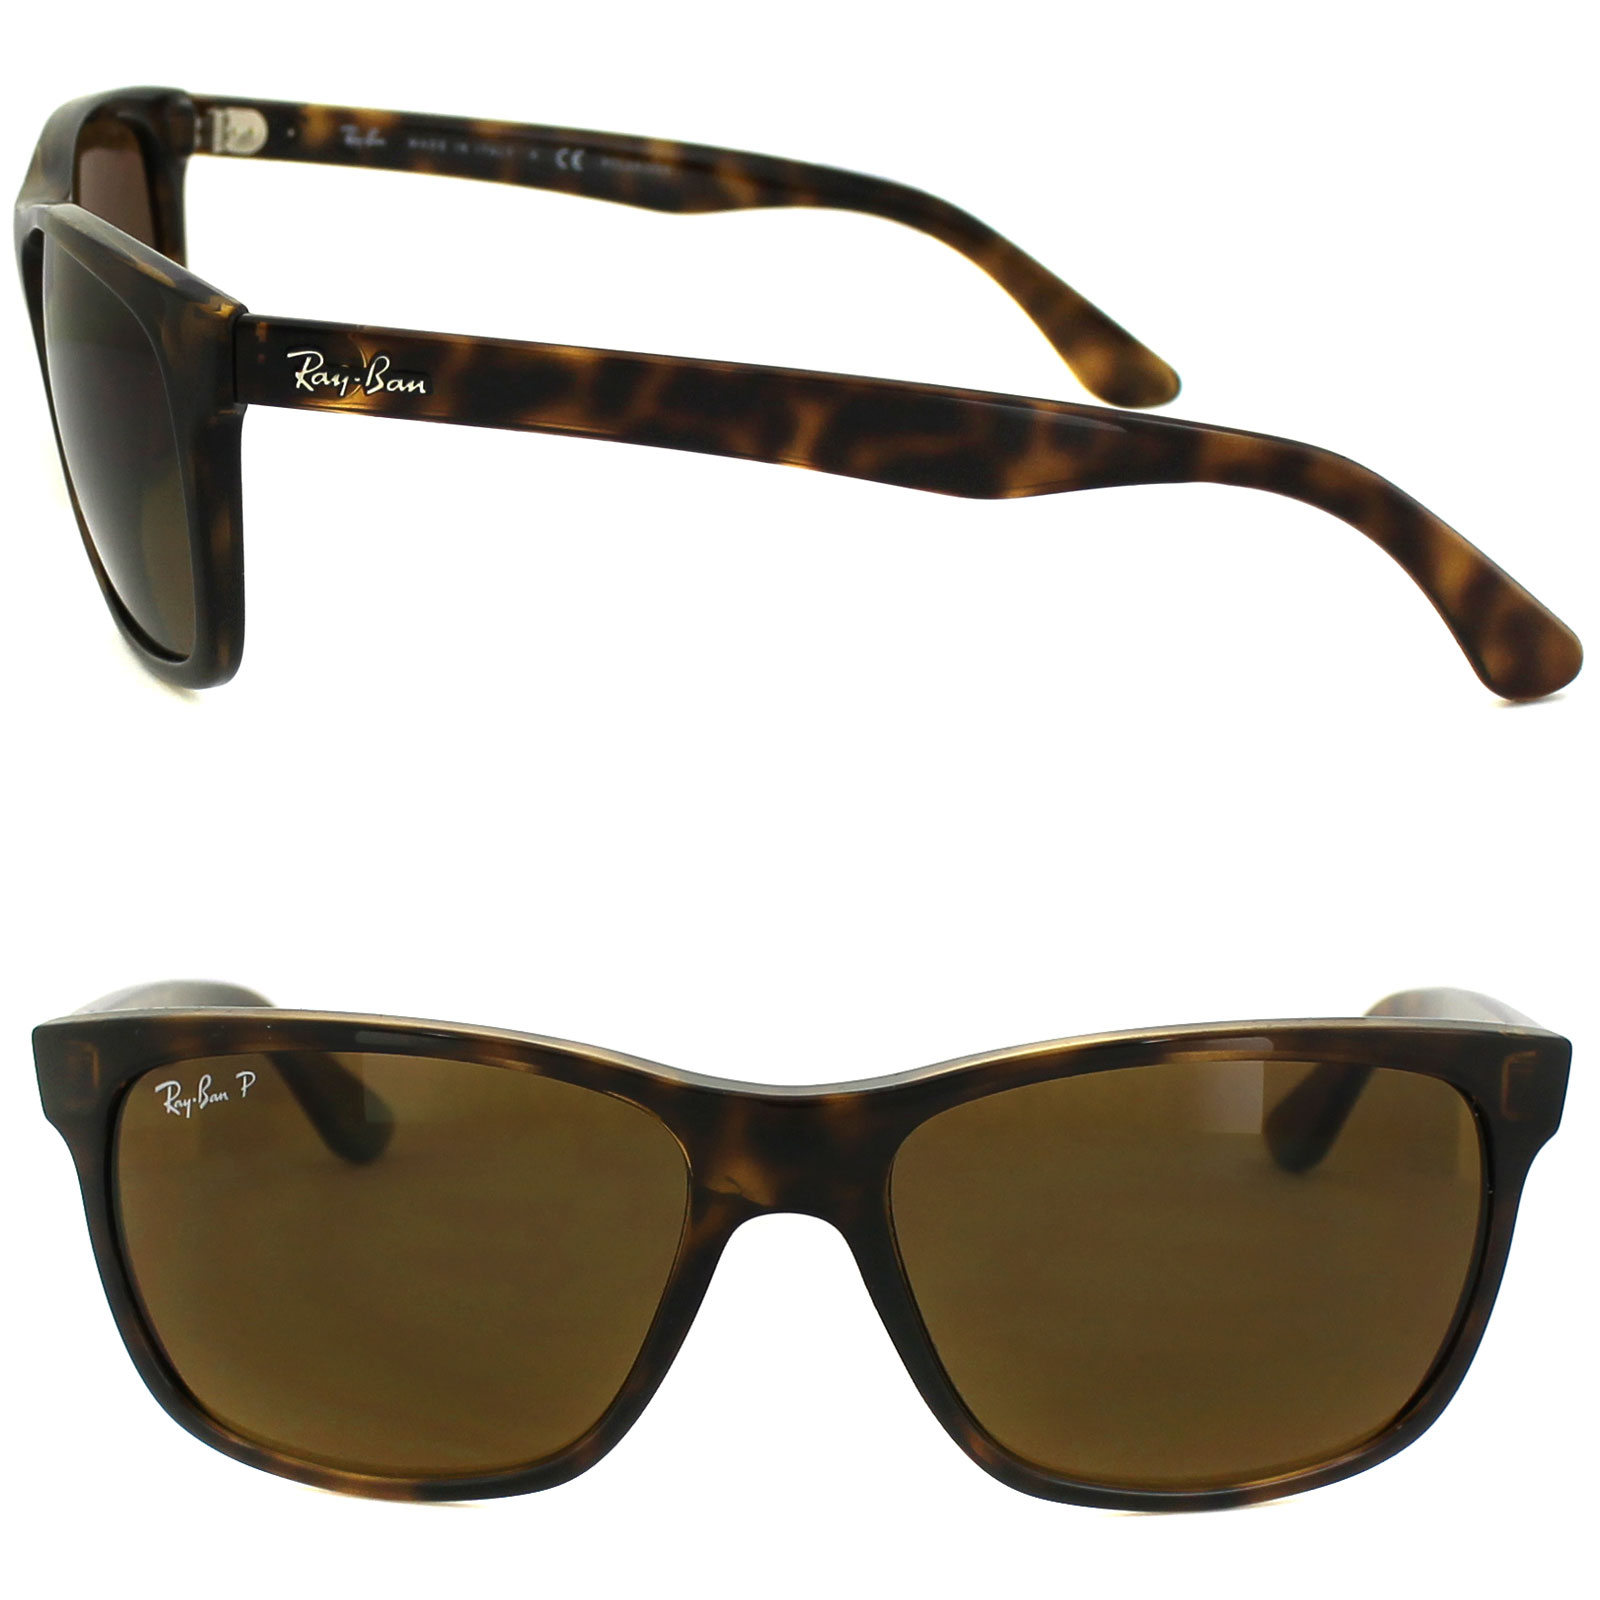 e735c2017904b ... germany sentinel rayban sunglasses 4181 710 83 light havana polarized  brown 70772 65cf7